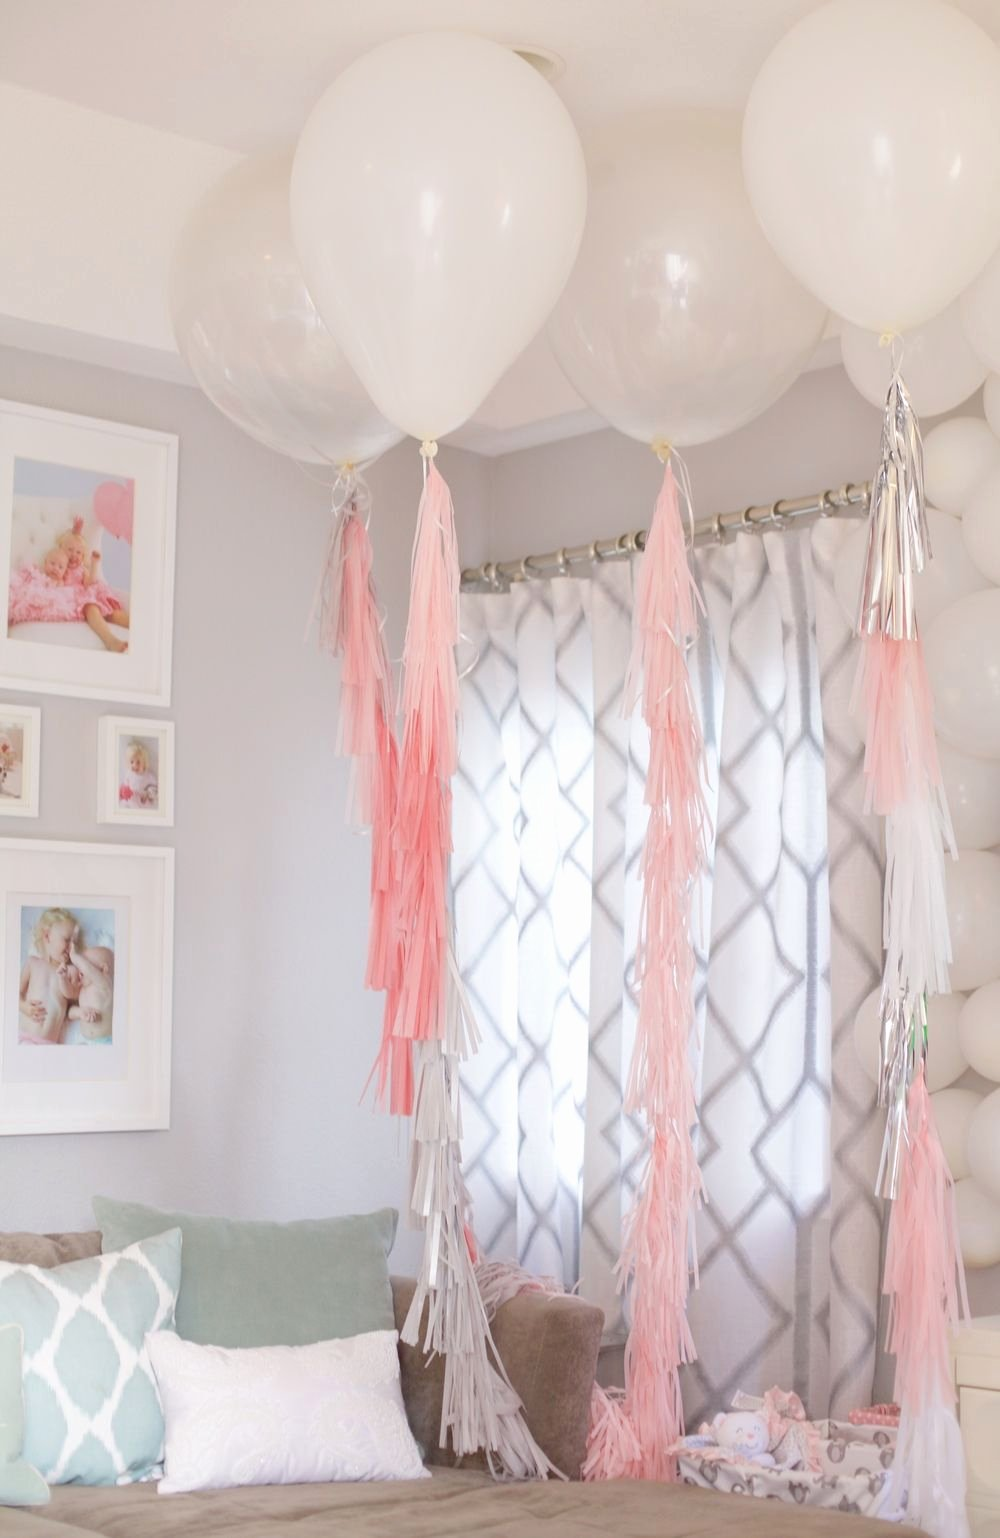 Baby Girl Birthday Decoration Ideas at Home New Diy Baby Girl First Birthday Party Pinterest Projects Home